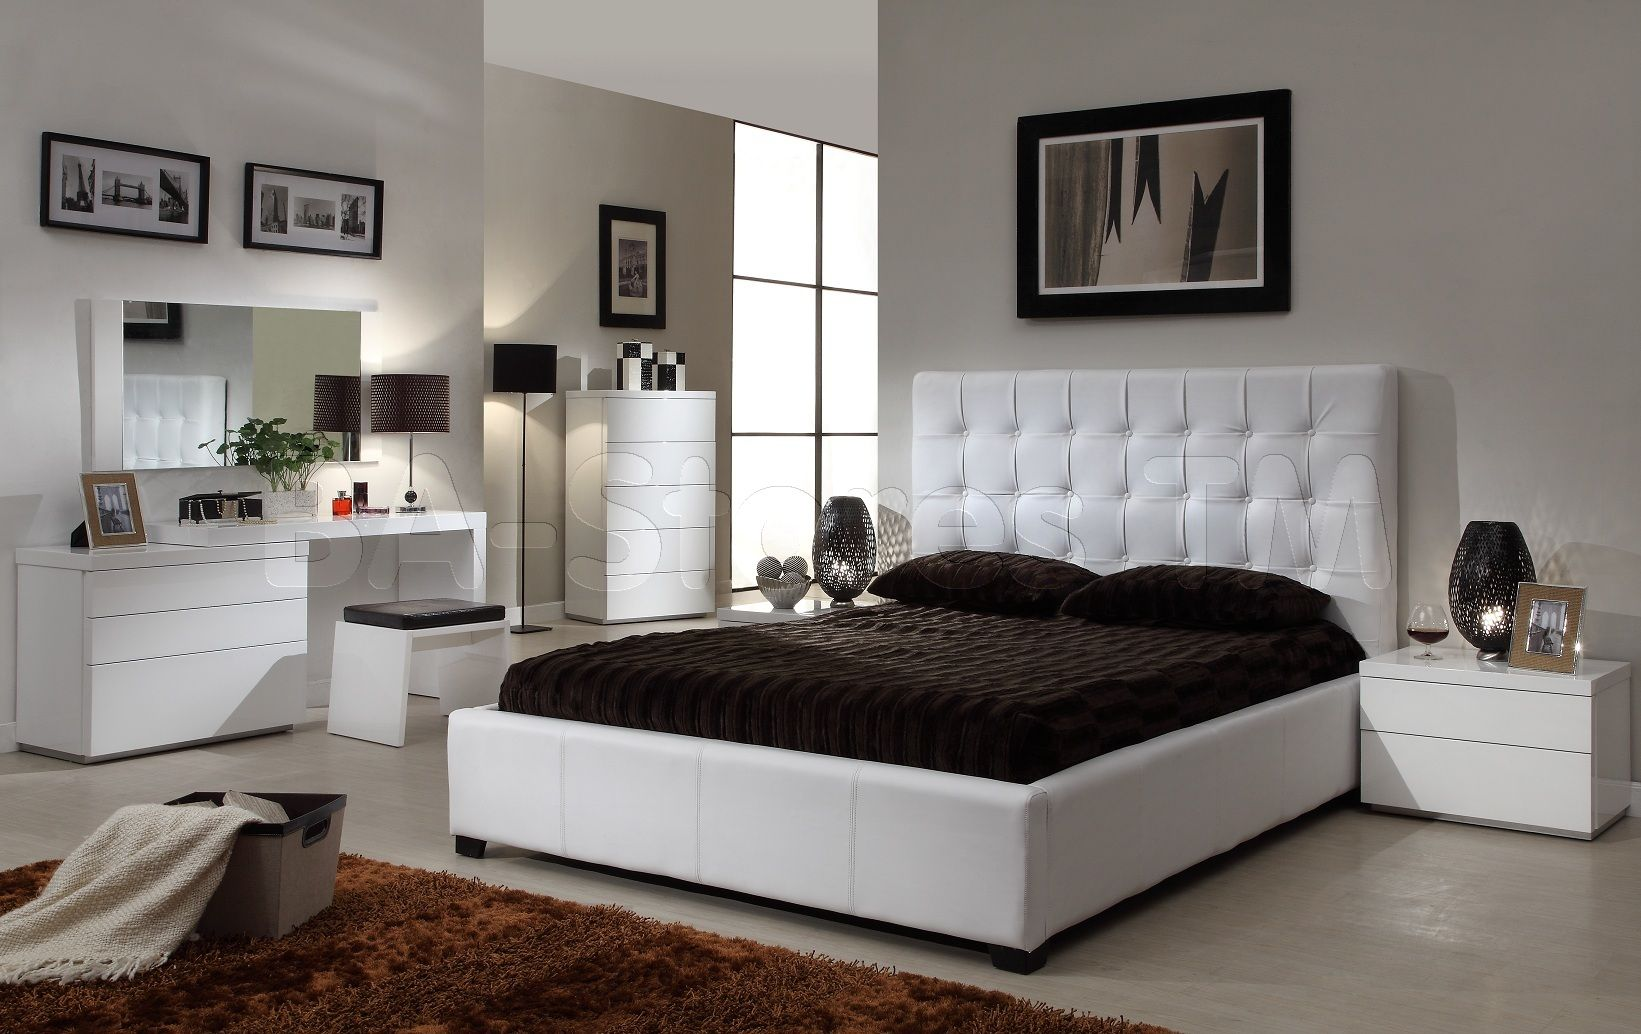 Queen Size Bett Abmessungen Ideen. Athens 5 PC White Bedroom Set (Bed,  Nightstand, Dresser, Wall Mirror And Stool)   AtHomeUSA